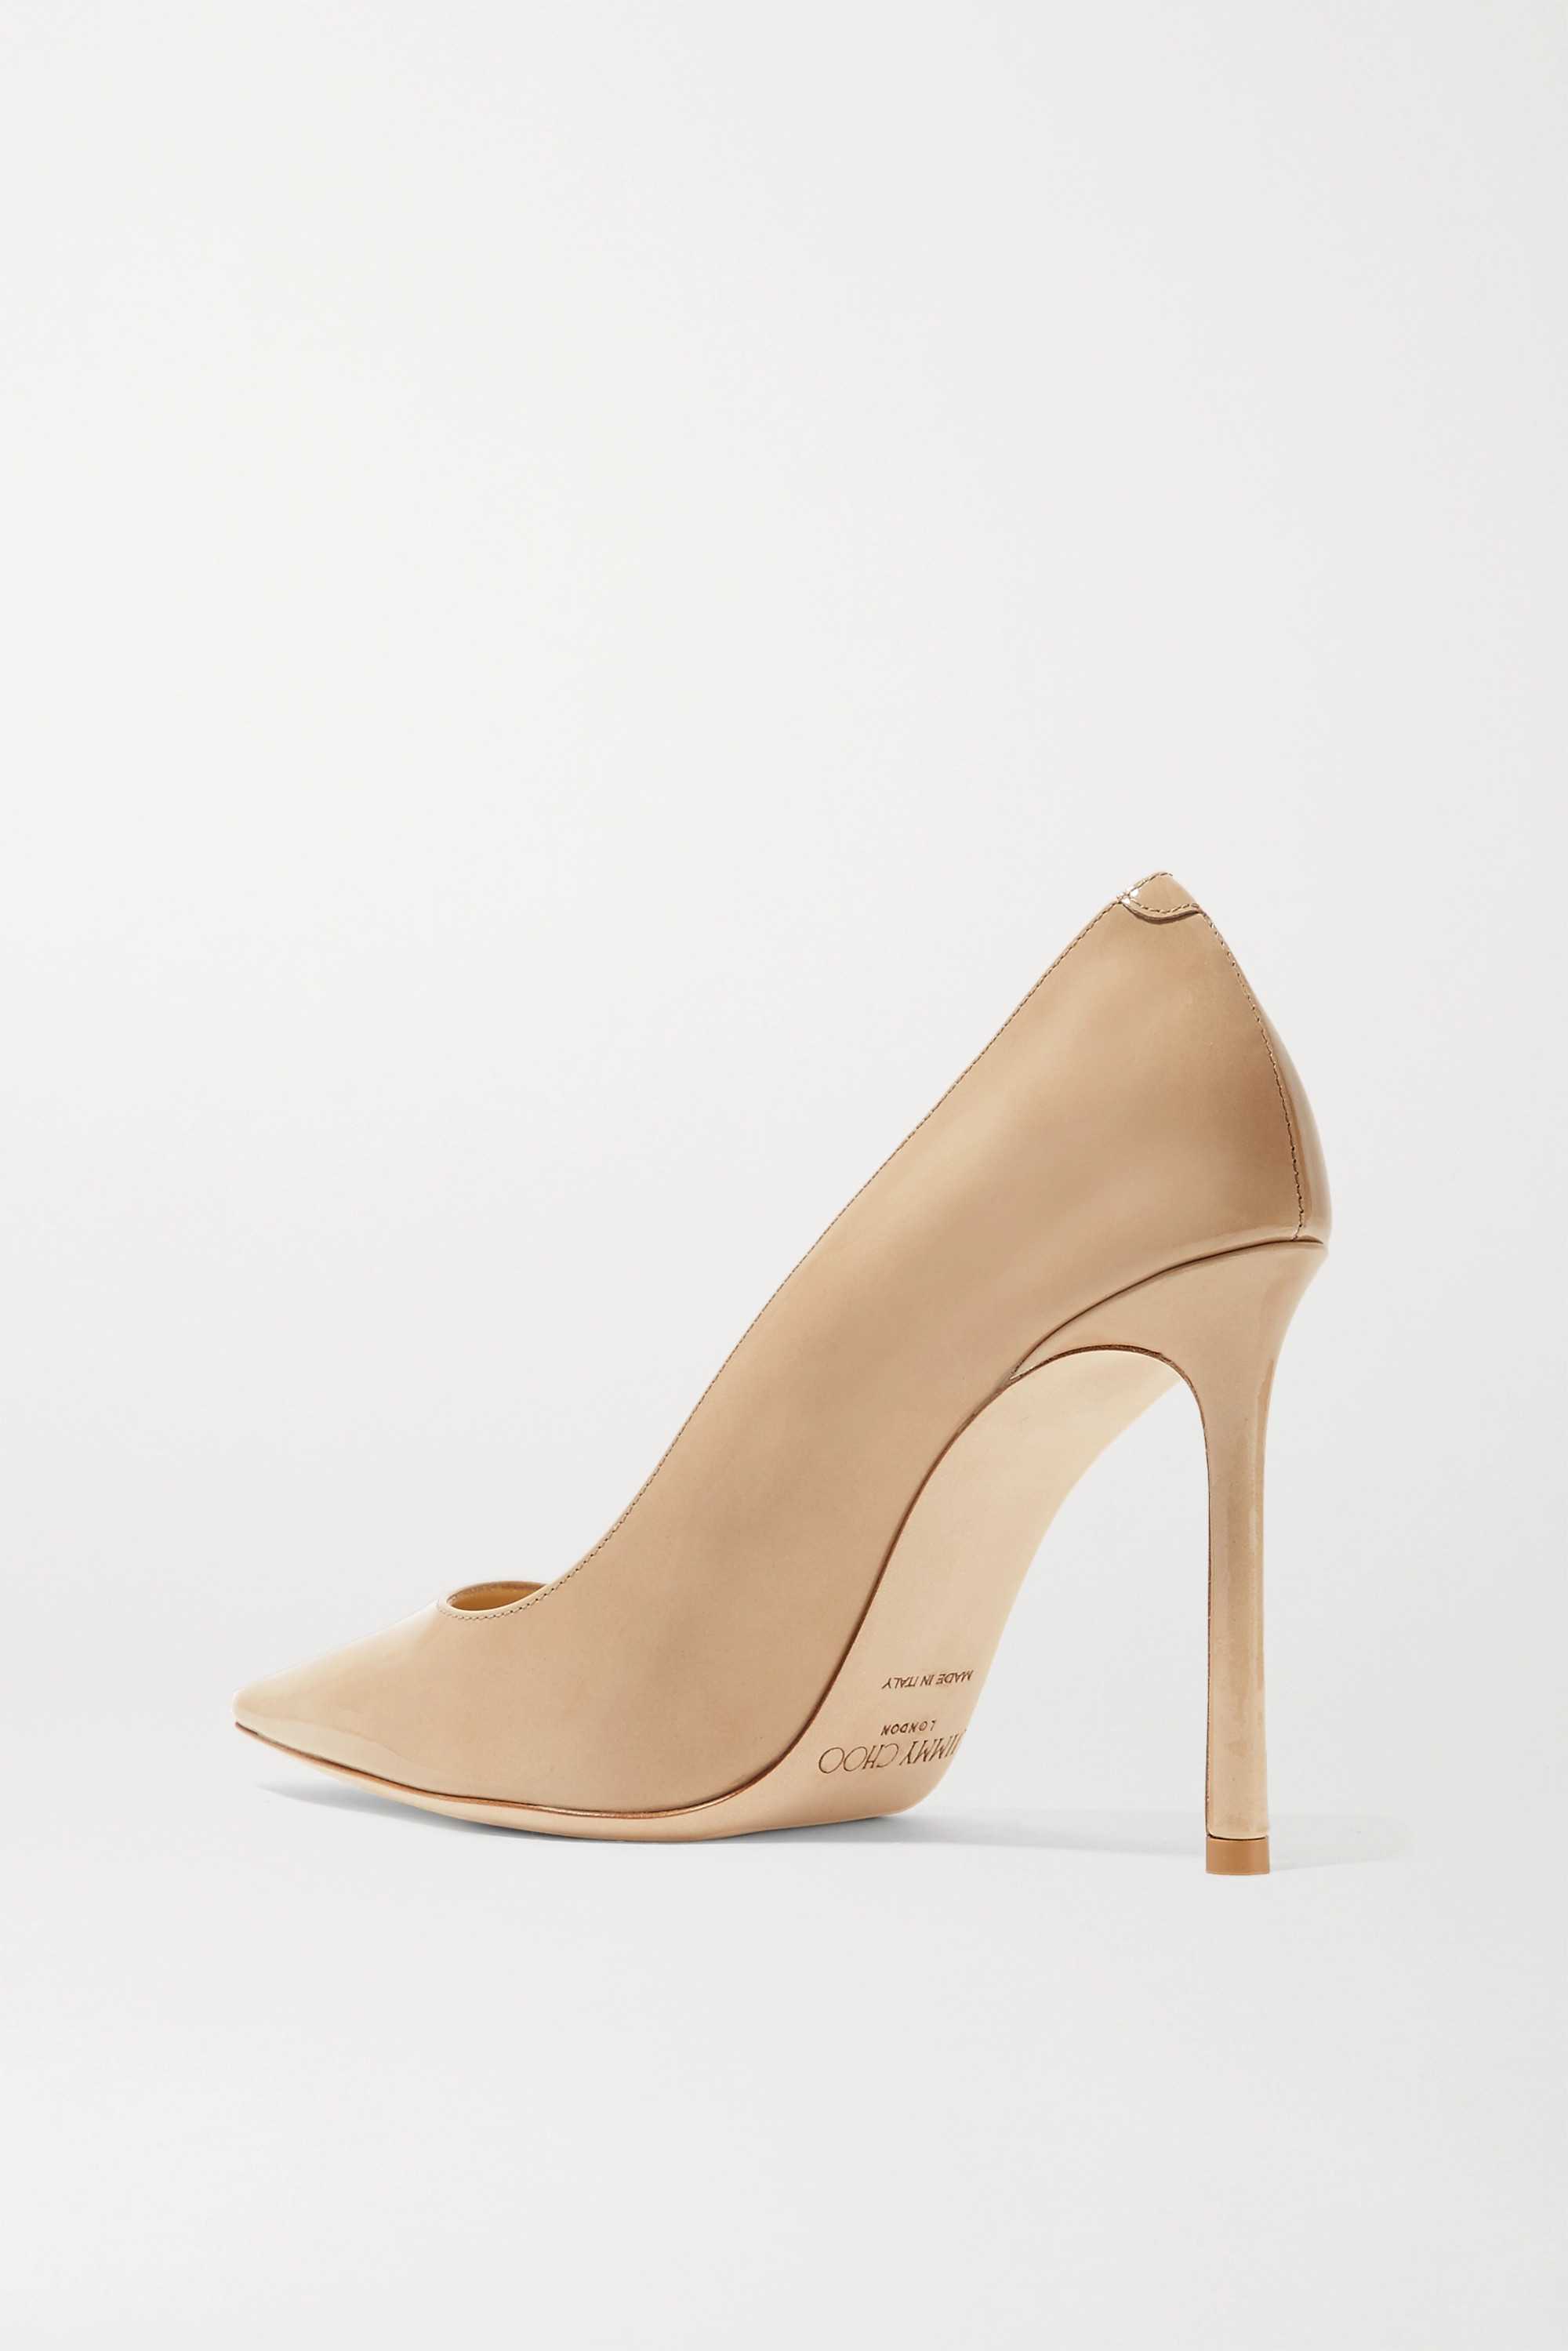 Sand Romy 100 Patent-leather Pumps | Jimmy Choo